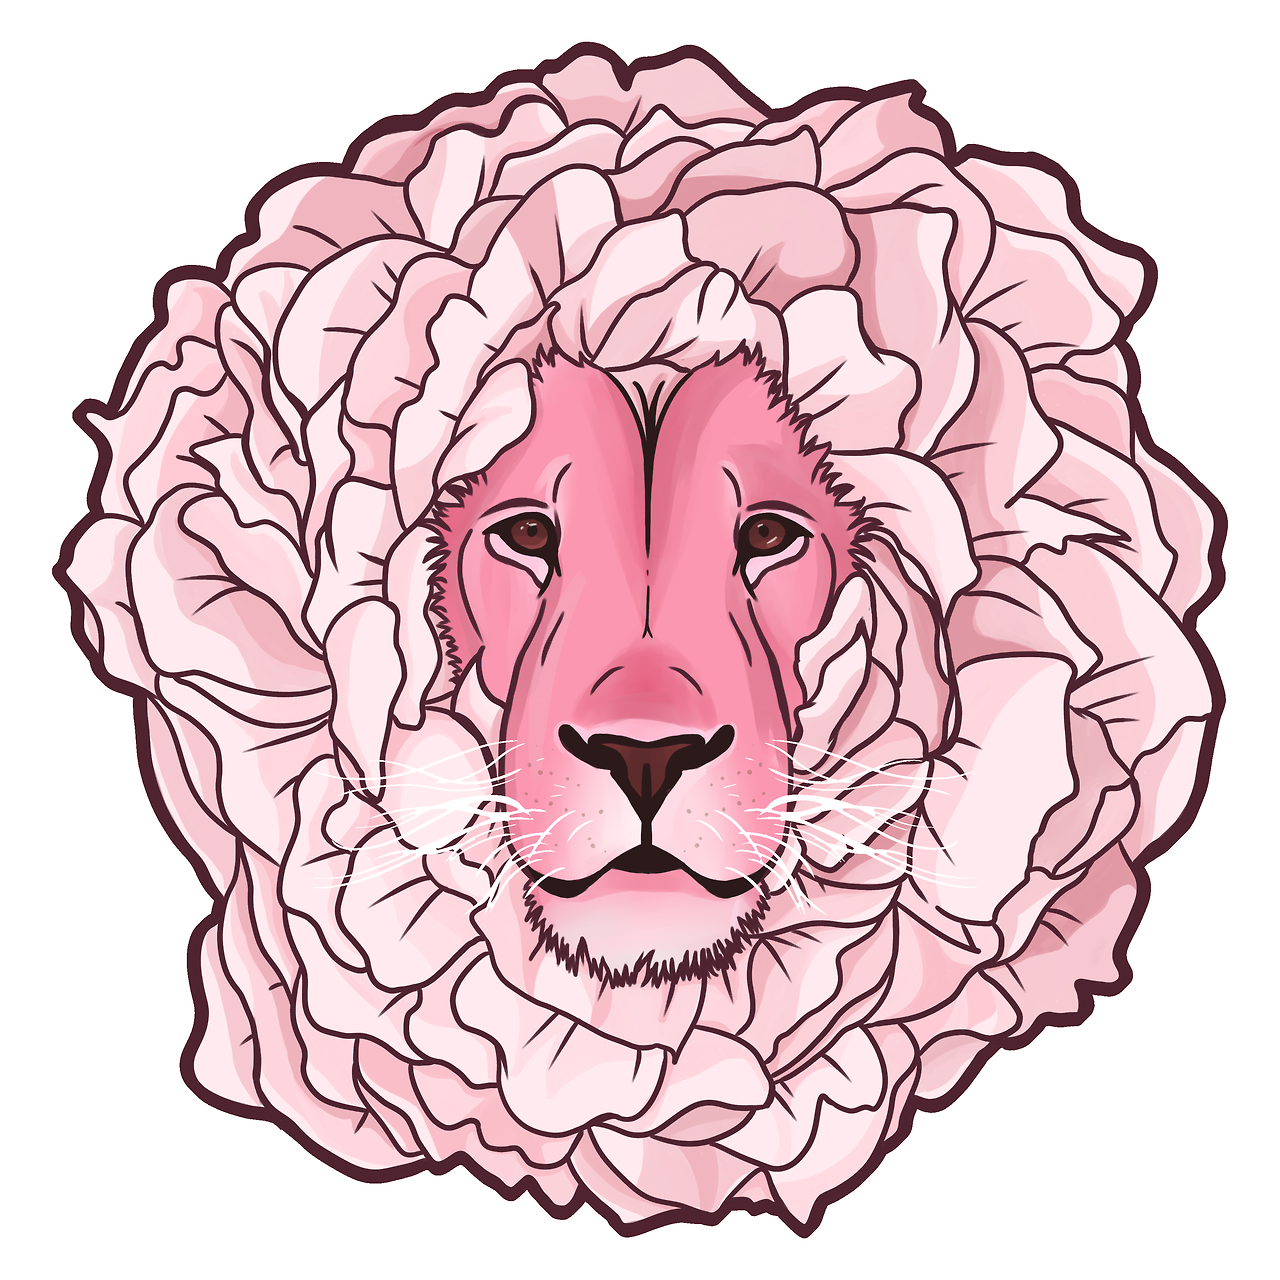 My friend gave me a painting of lion so I wanted to return the favour, so here's a peony lion